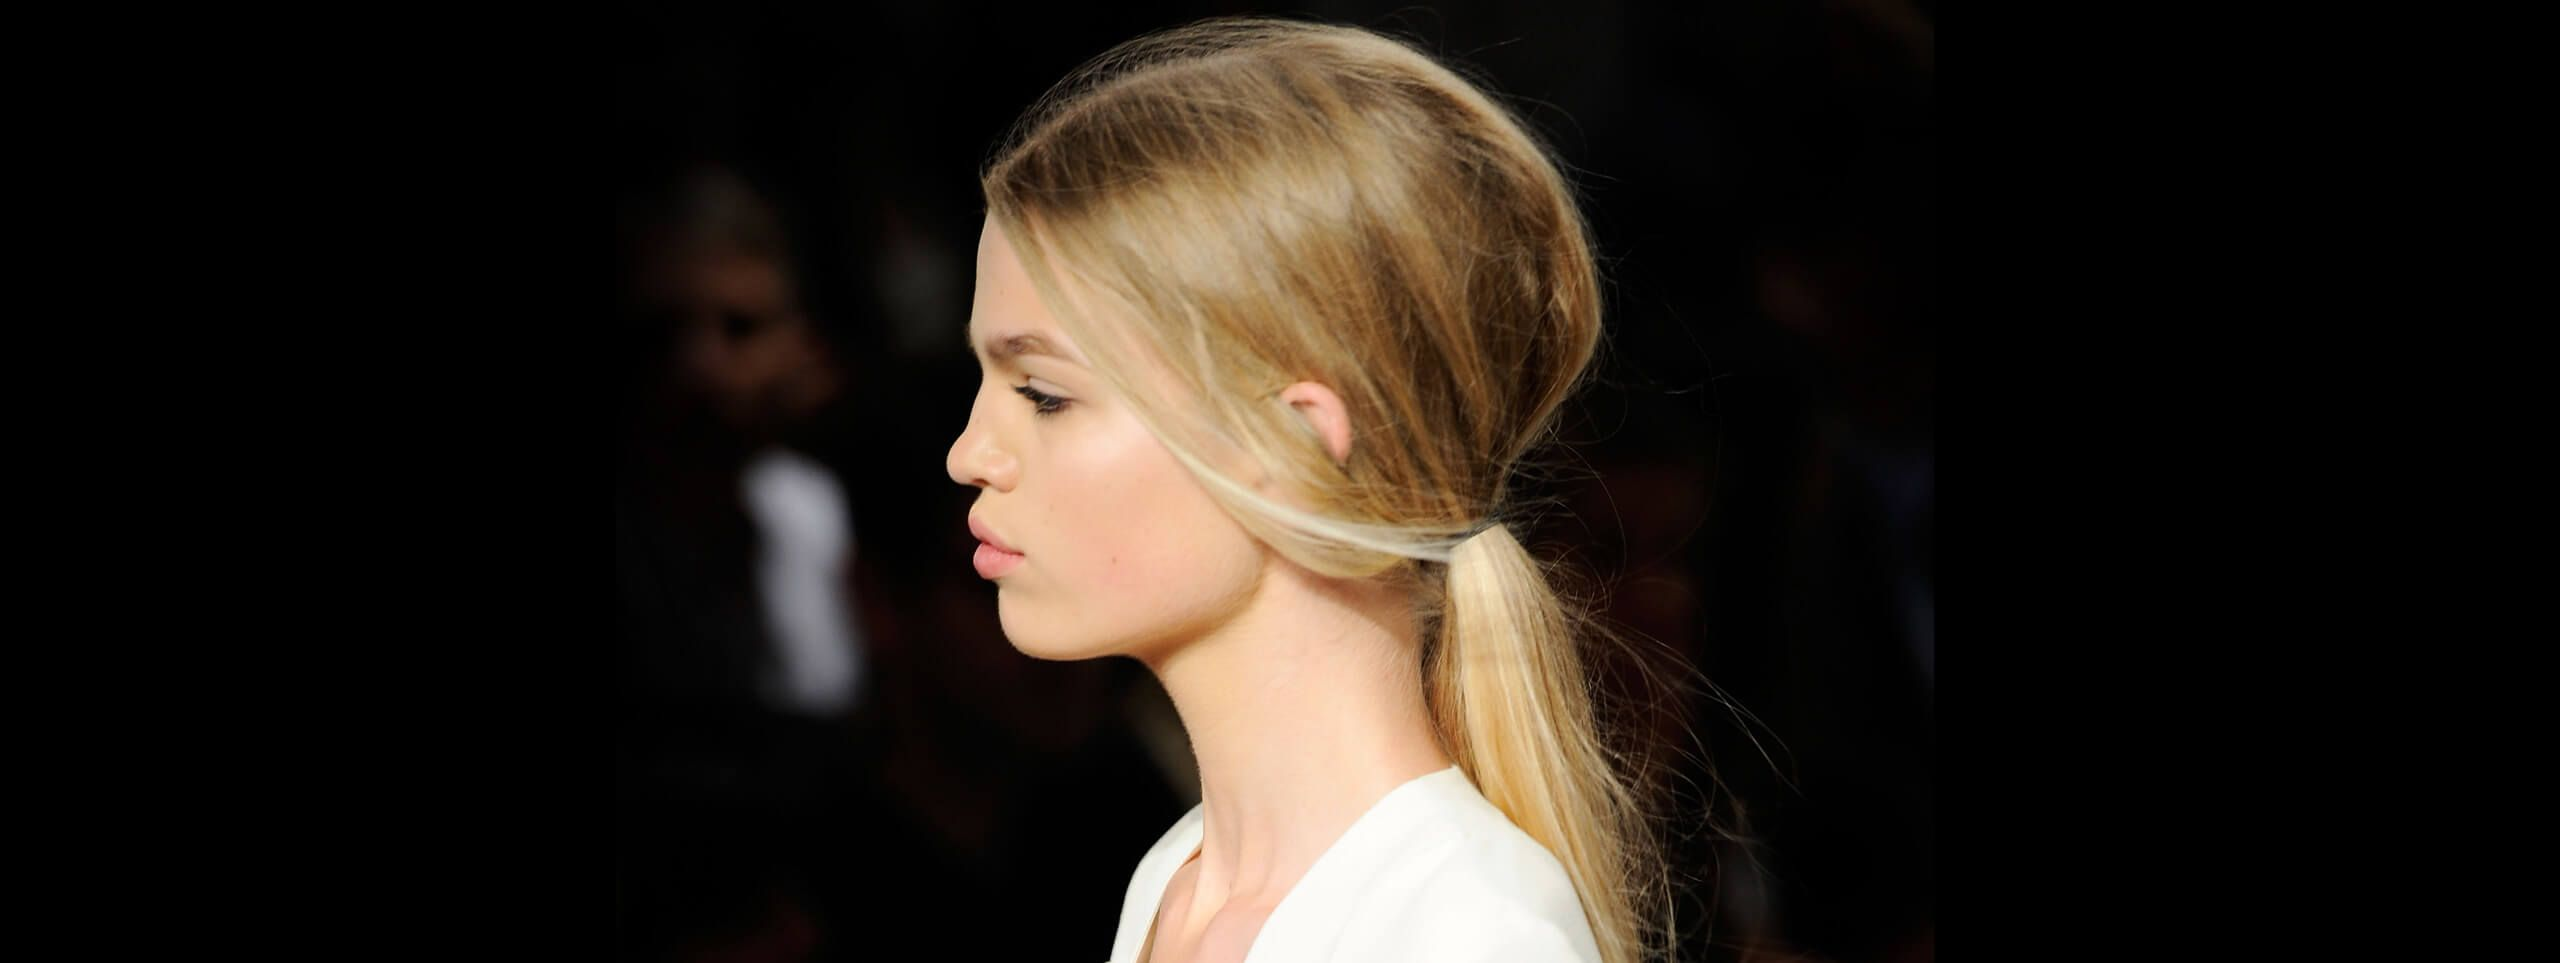 Model with hairstyle tied into a loose pony